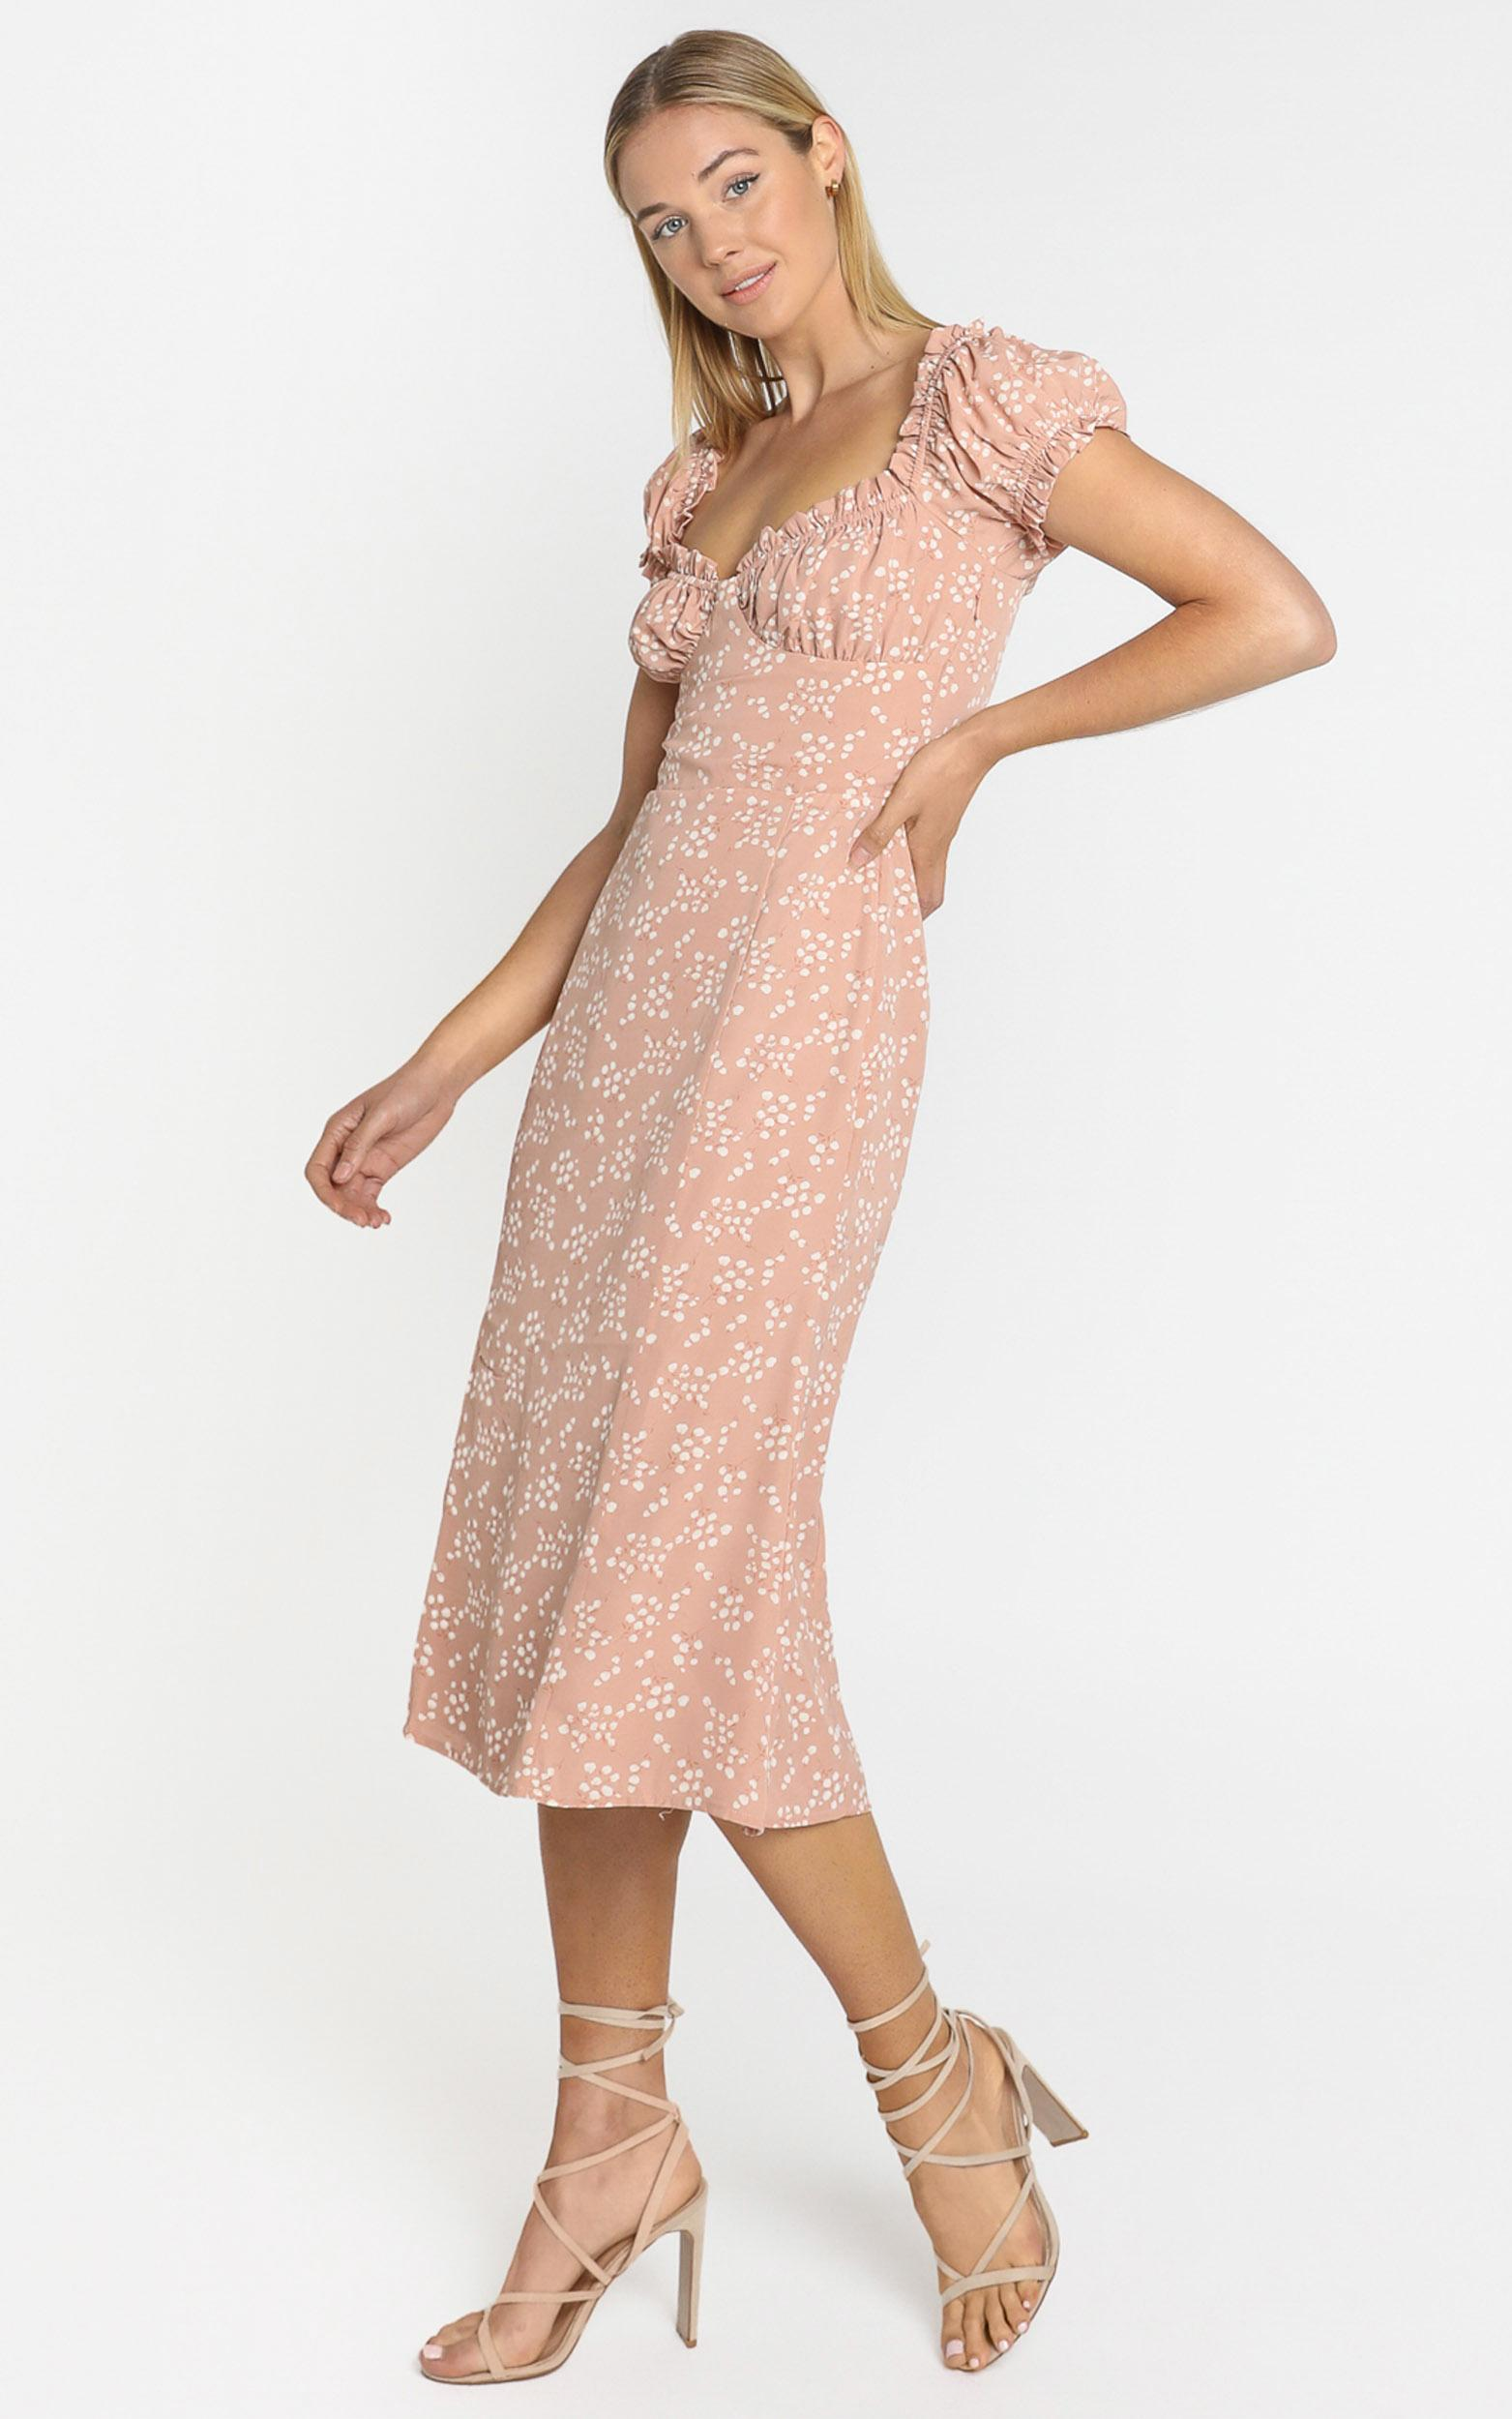 Lulu & Rose - Cosette Midi Dress in Floral - 4 (XXS), Blush, hi-res image number null